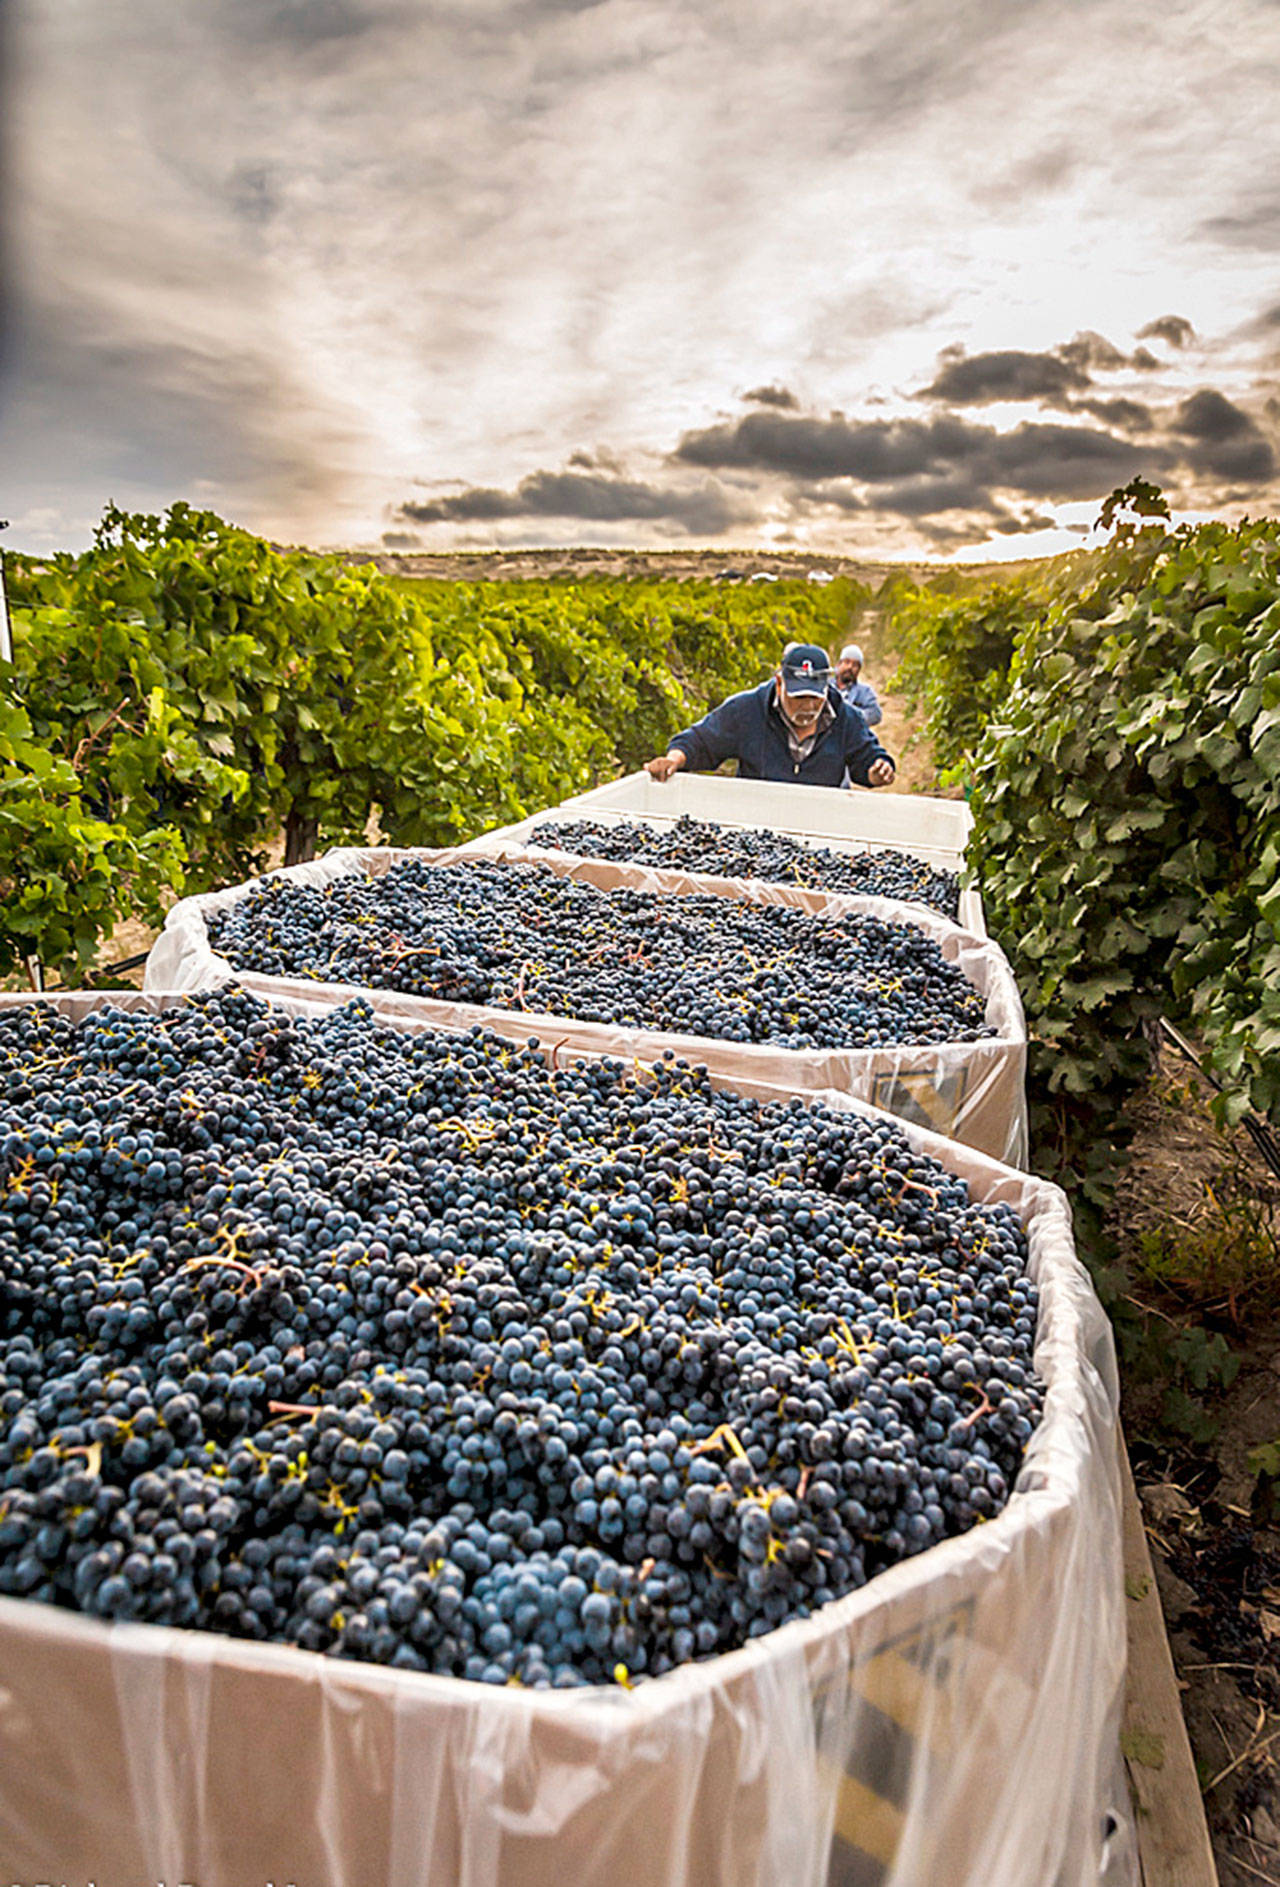 Bins of cabernet sauvignon now signal the largest harvest of grapes in the Washington state wine industry. (Richard Duval Images)